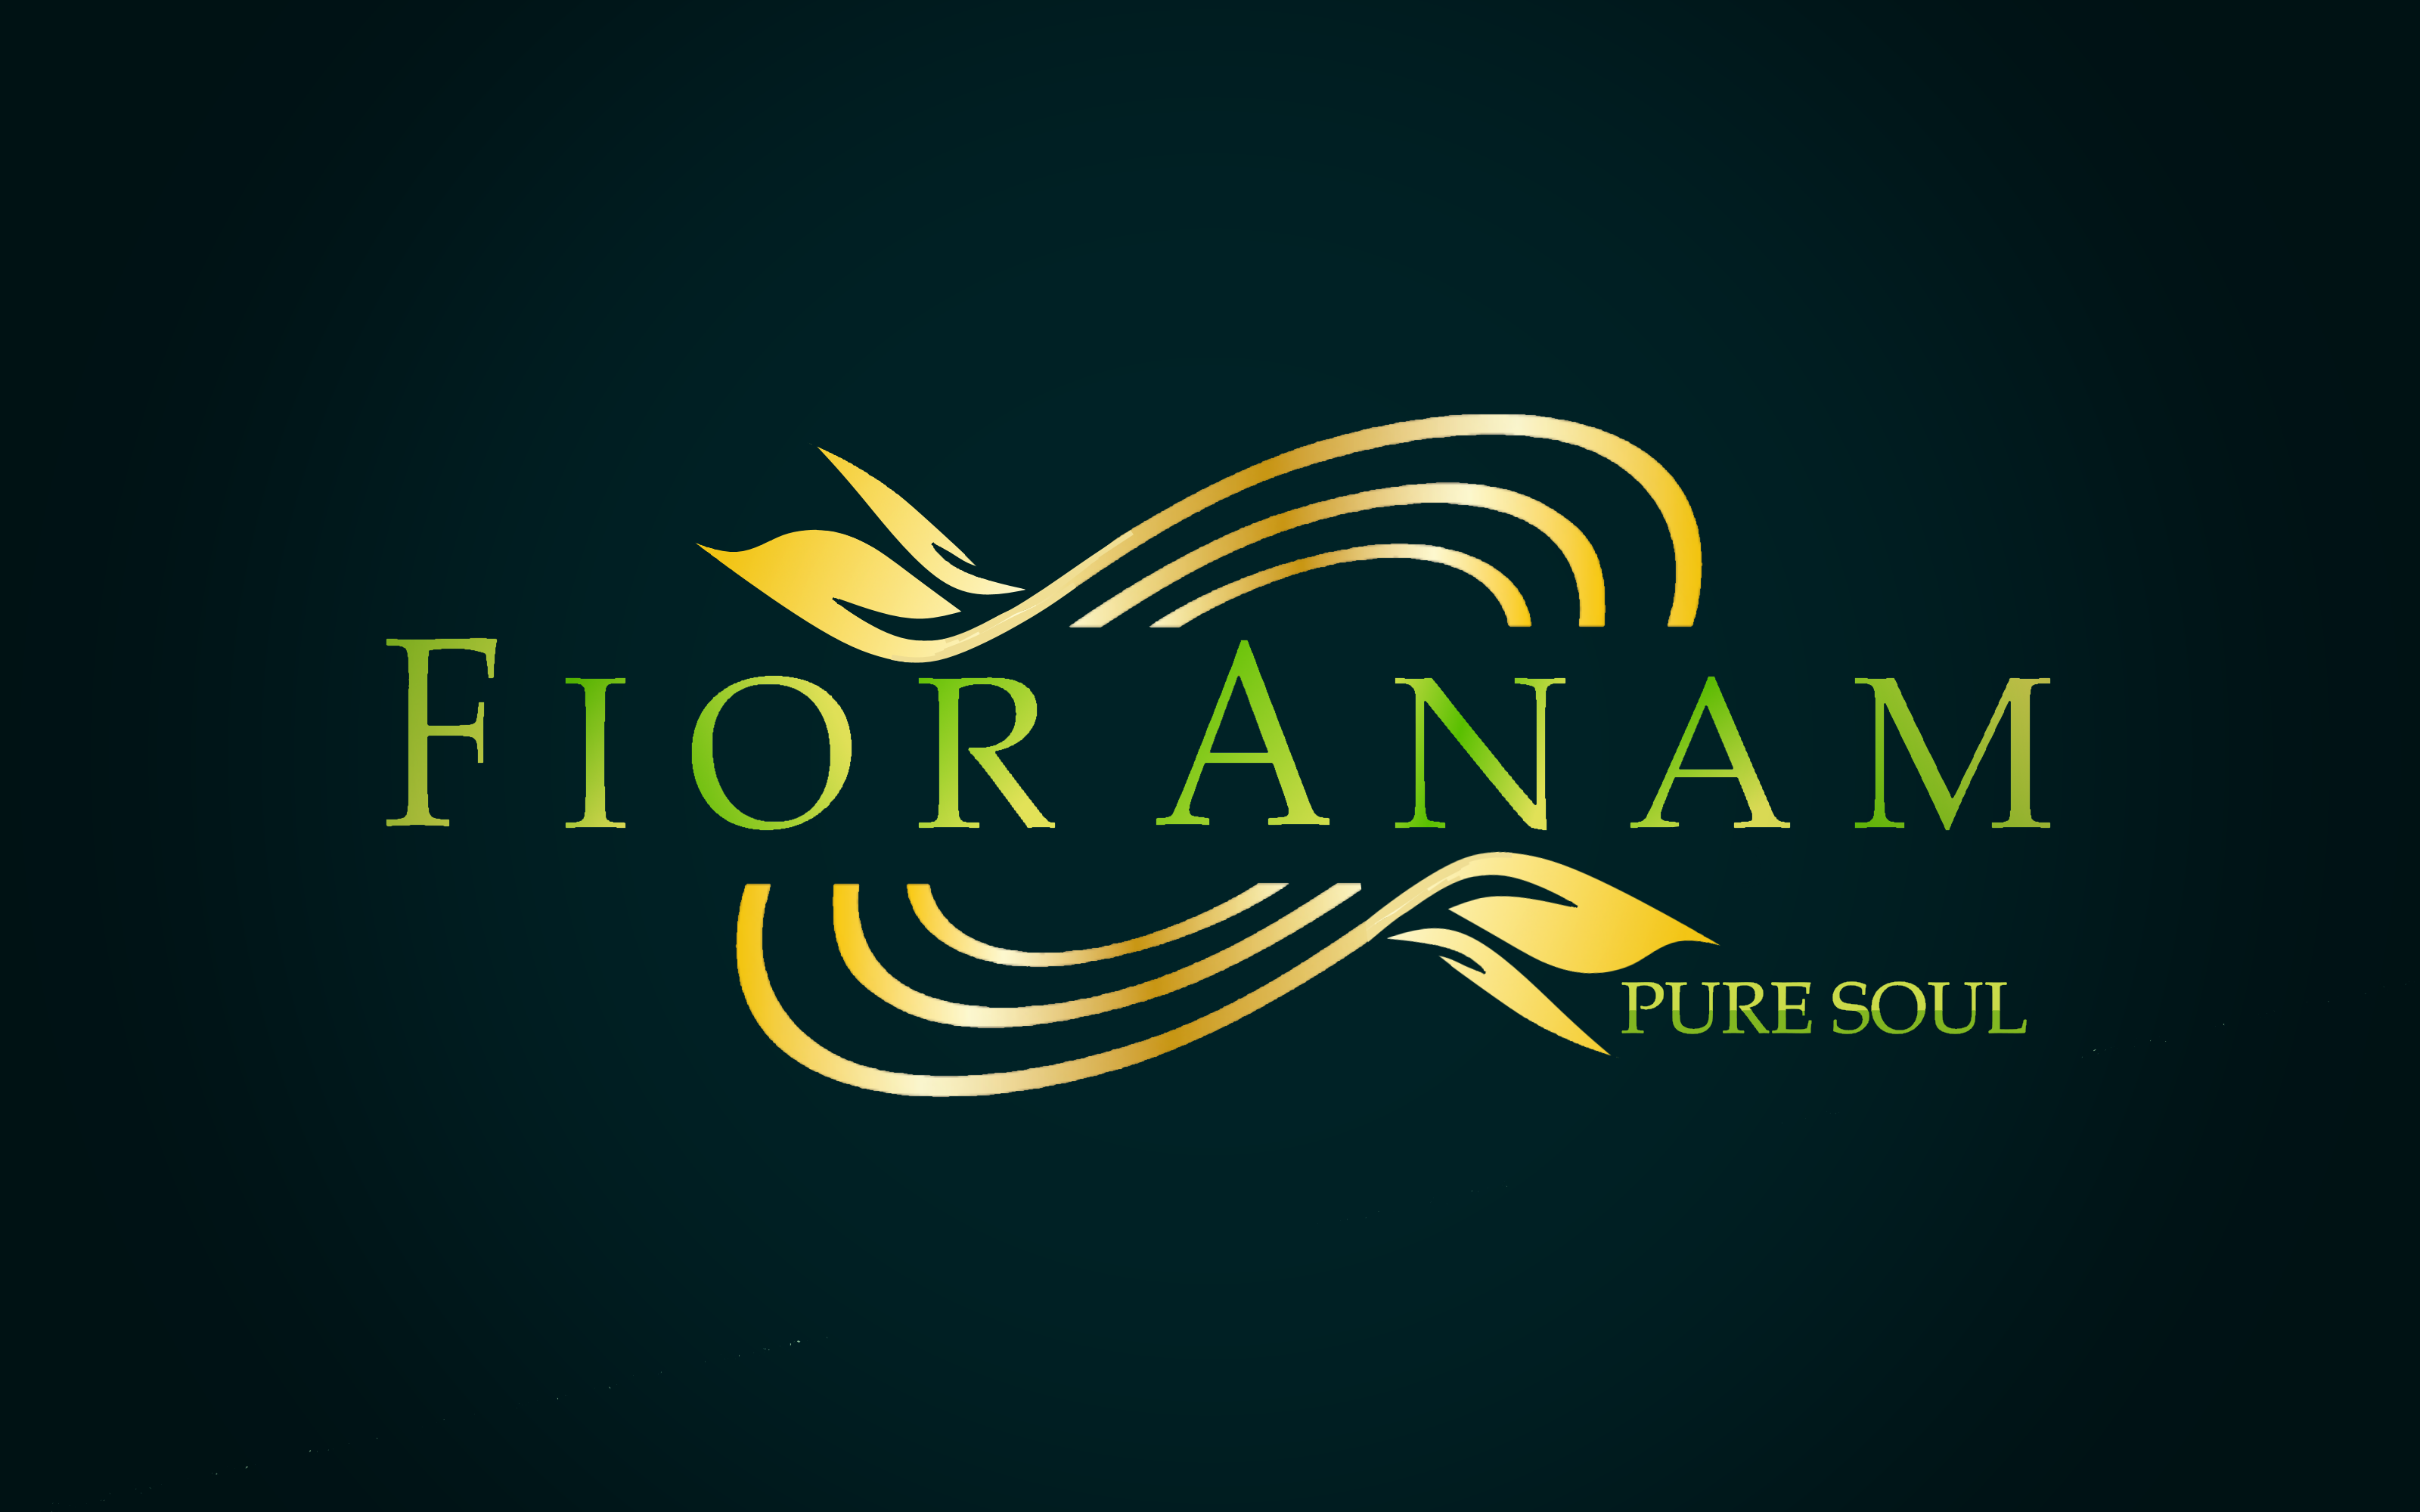 Logo Design by Roberto Bassi - Entry No. 390 in the Logo Design Contest Creative Logo Design for Fior Anam.